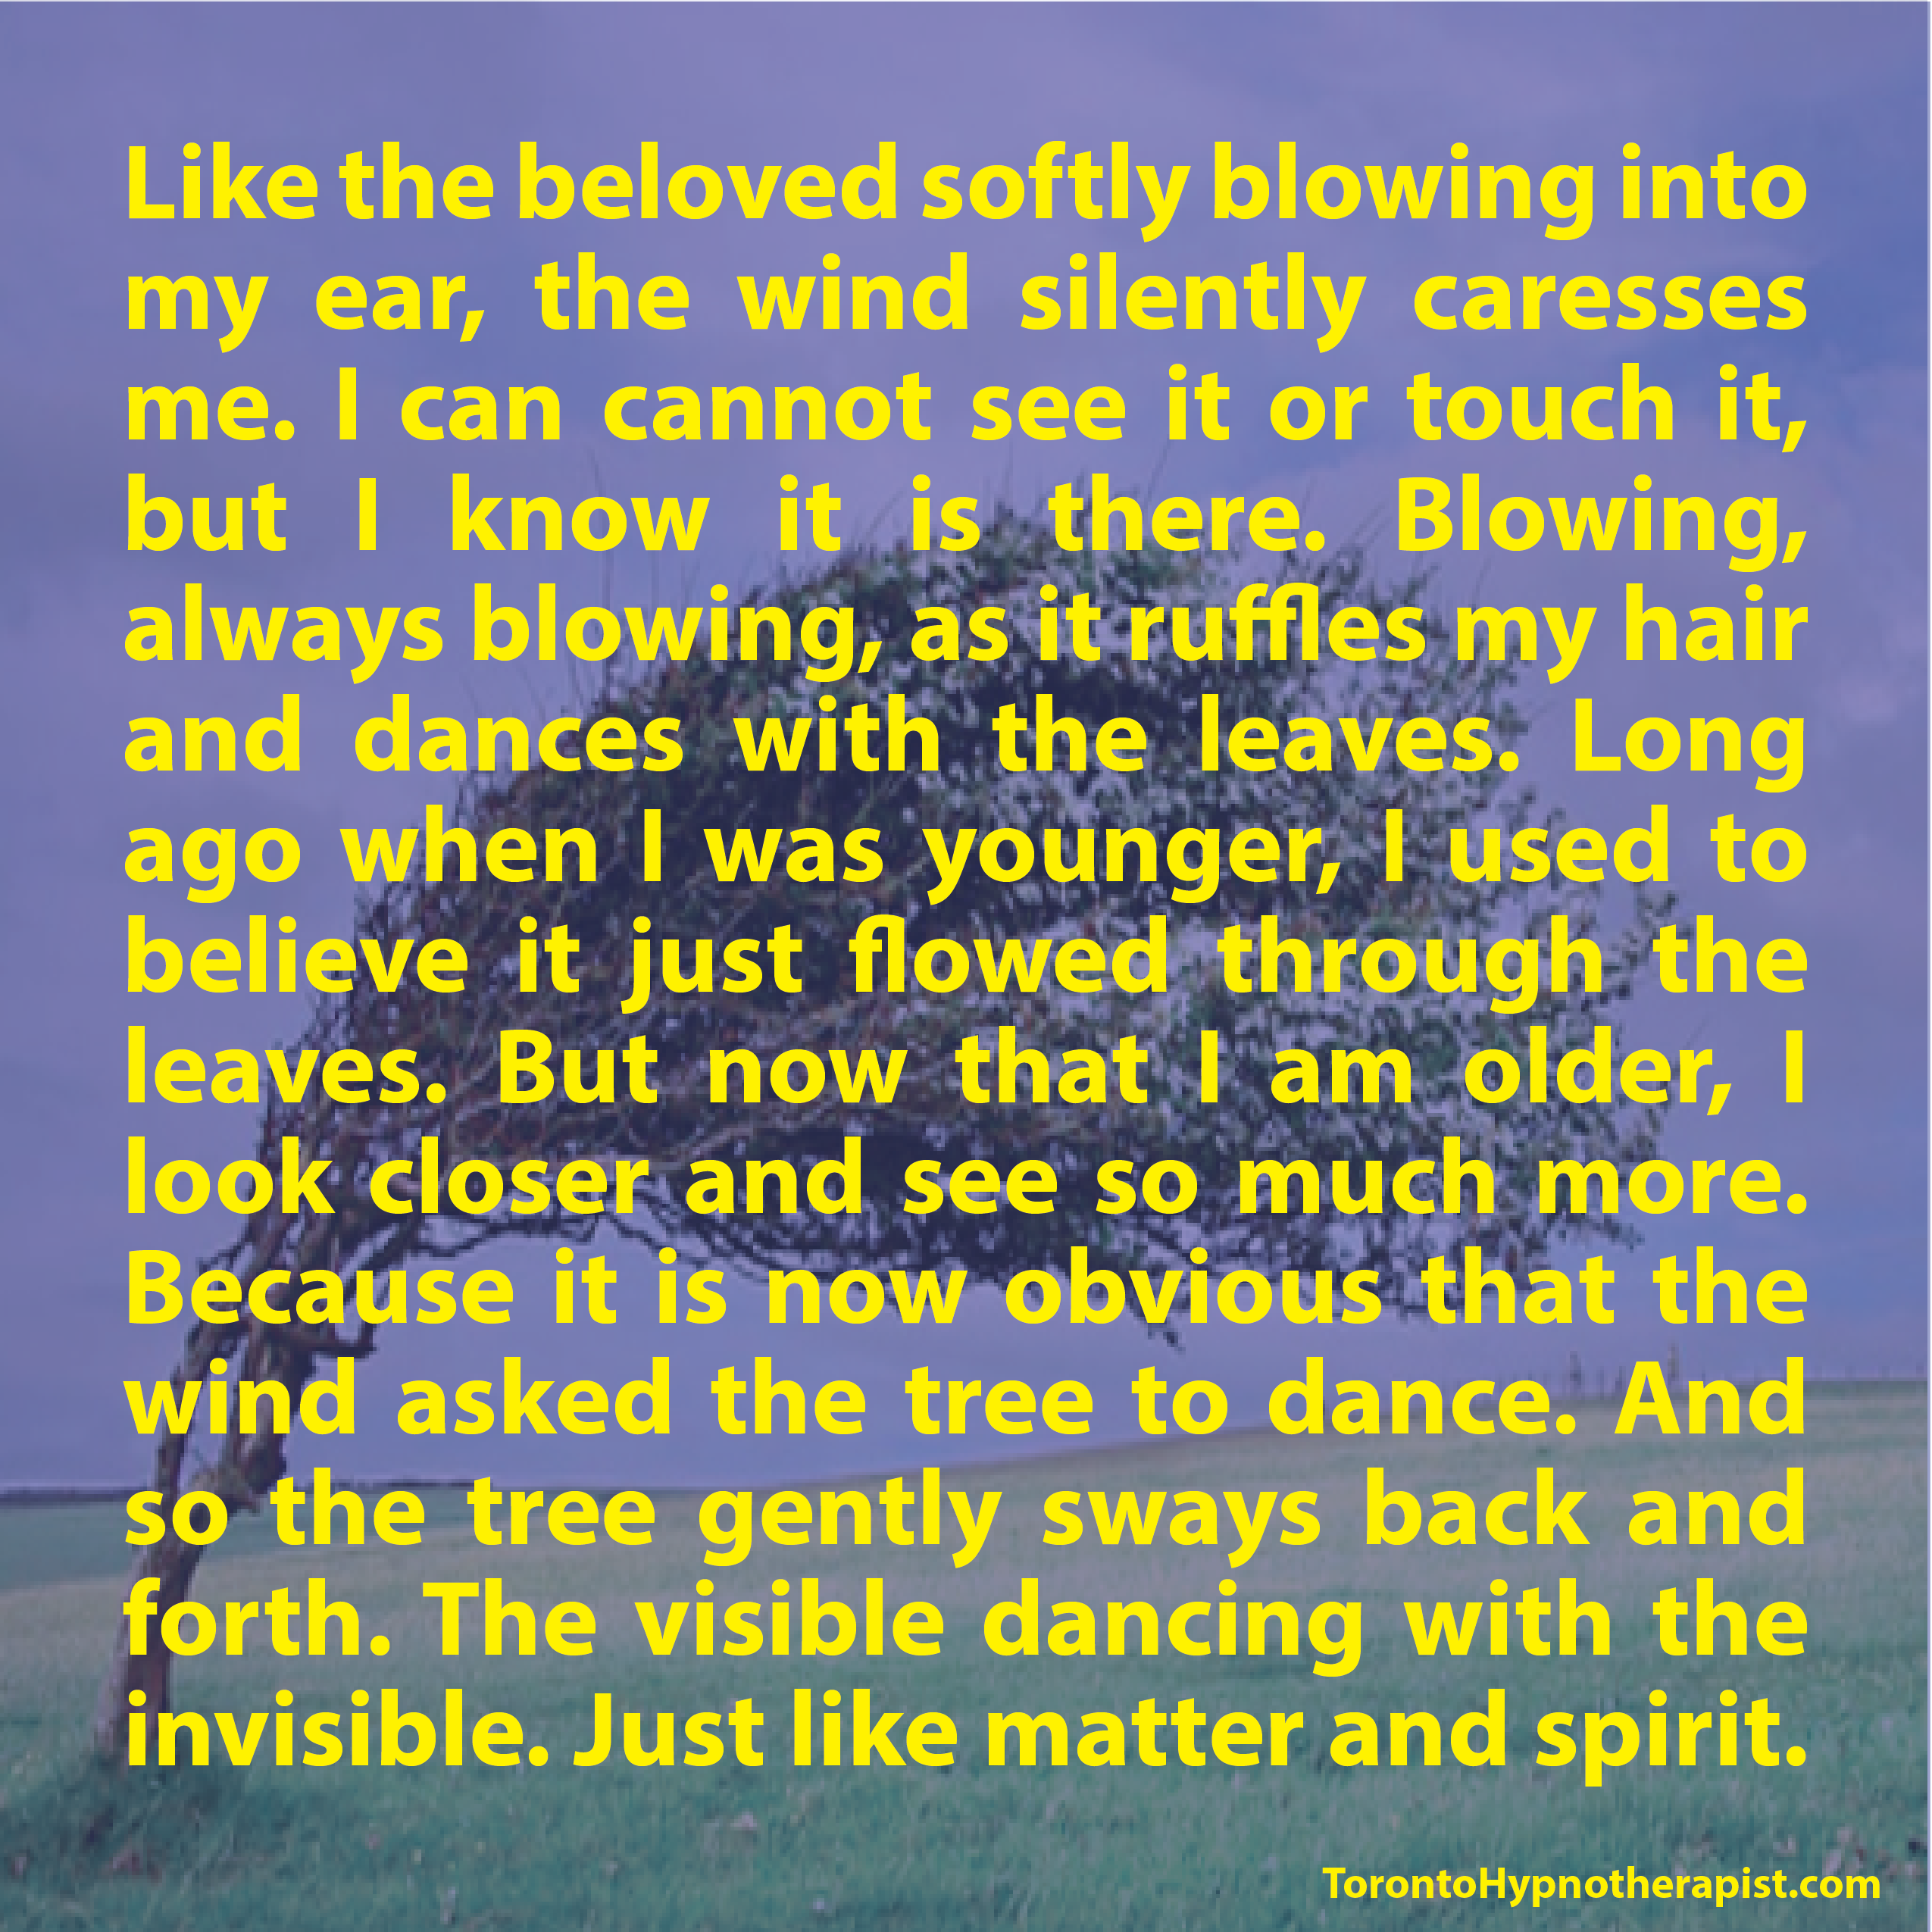 Like the beloved softly blowing into my ear, the wind silently caresses me. I can cannot see it or touch it, but I know it is there. Blowing, always blowing, as it ruffles my hair and dances with t…